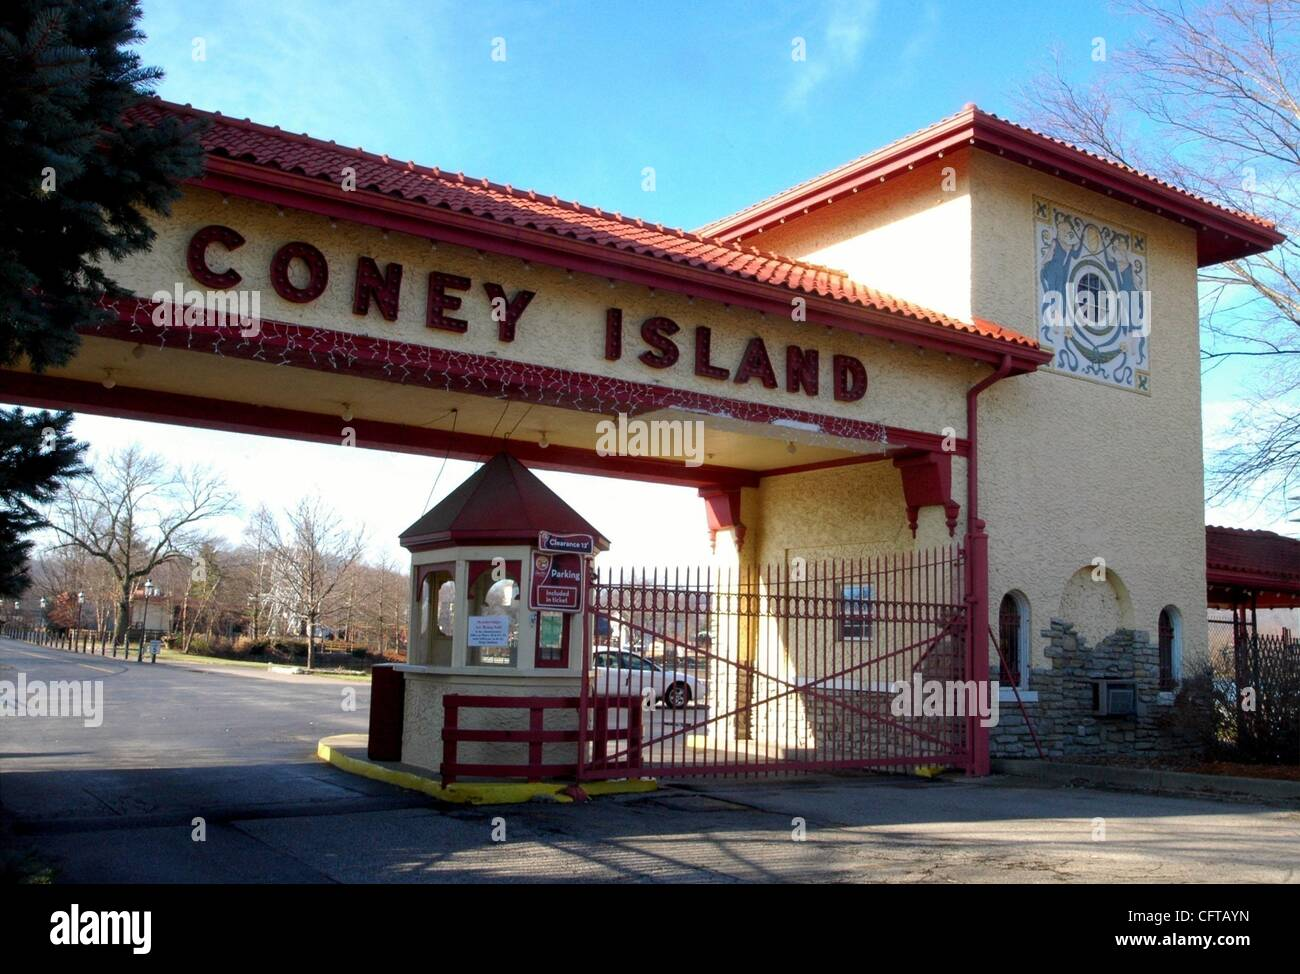 Dec 26, 2006 - Cincinnati, Ohio, USA - An icon of the township is Coney Island Park at the foot of Sutton Road and - Stock Image